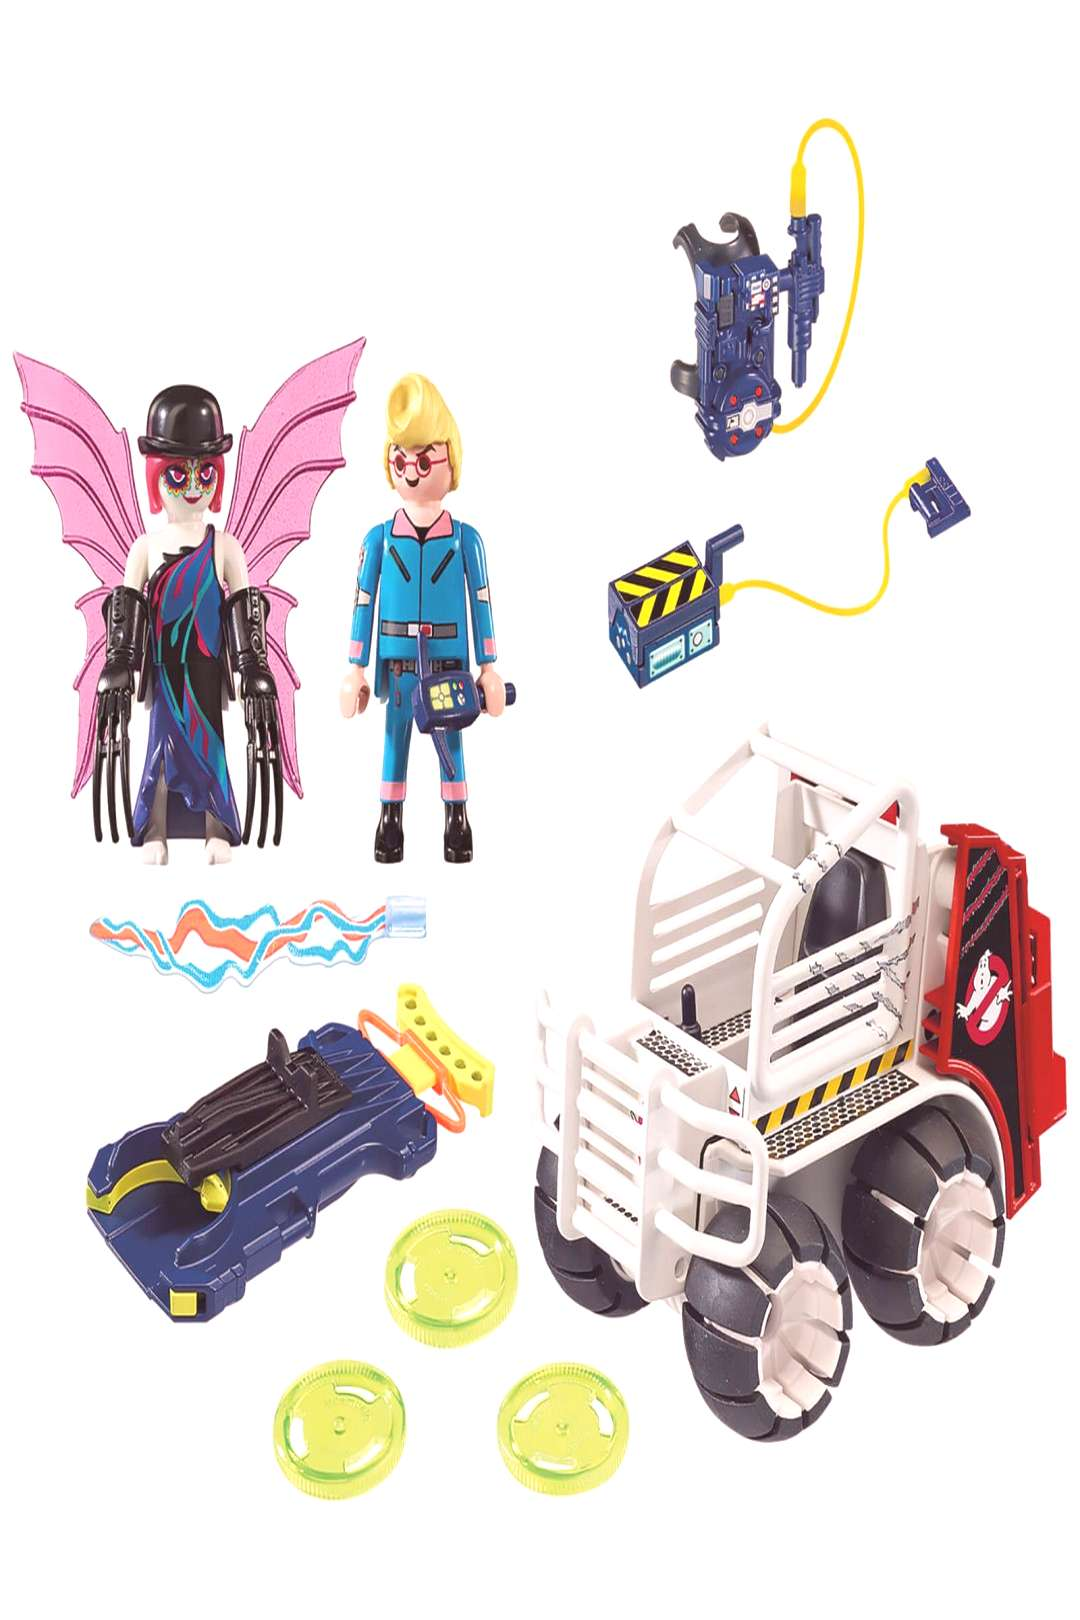 Playmobil Ghostbusters Cage Vehicle (9386) - Playmobil Ghostbusters Cage Vehicle (9386) -